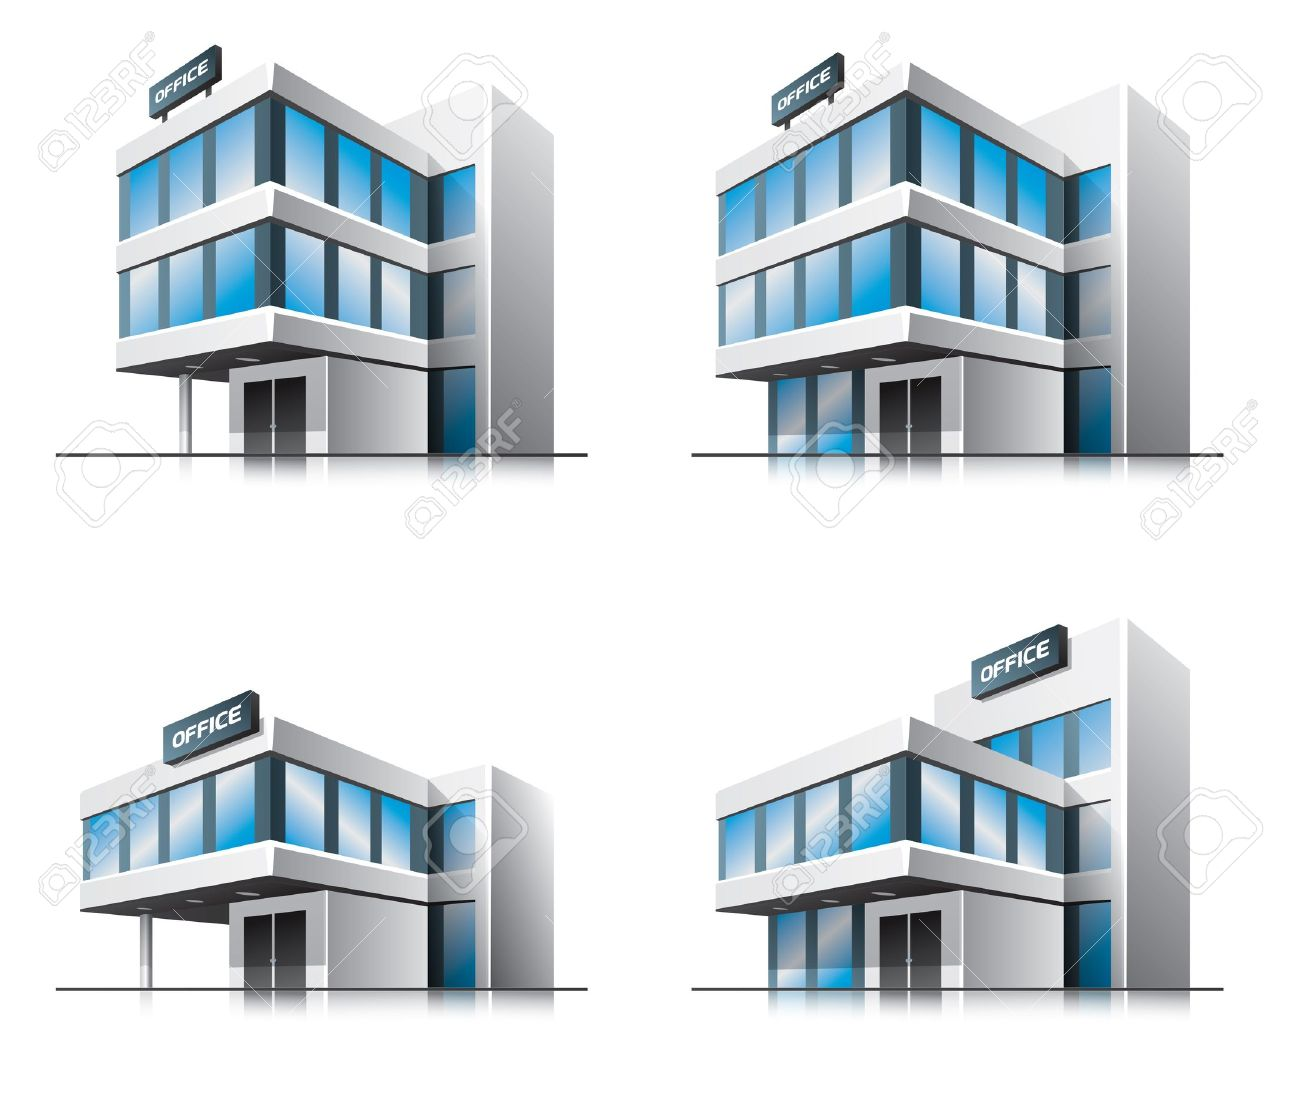 Four Cartoon Office Buildings Royalty Free Cliparts Vectors And Stock Illustration Image 15712371